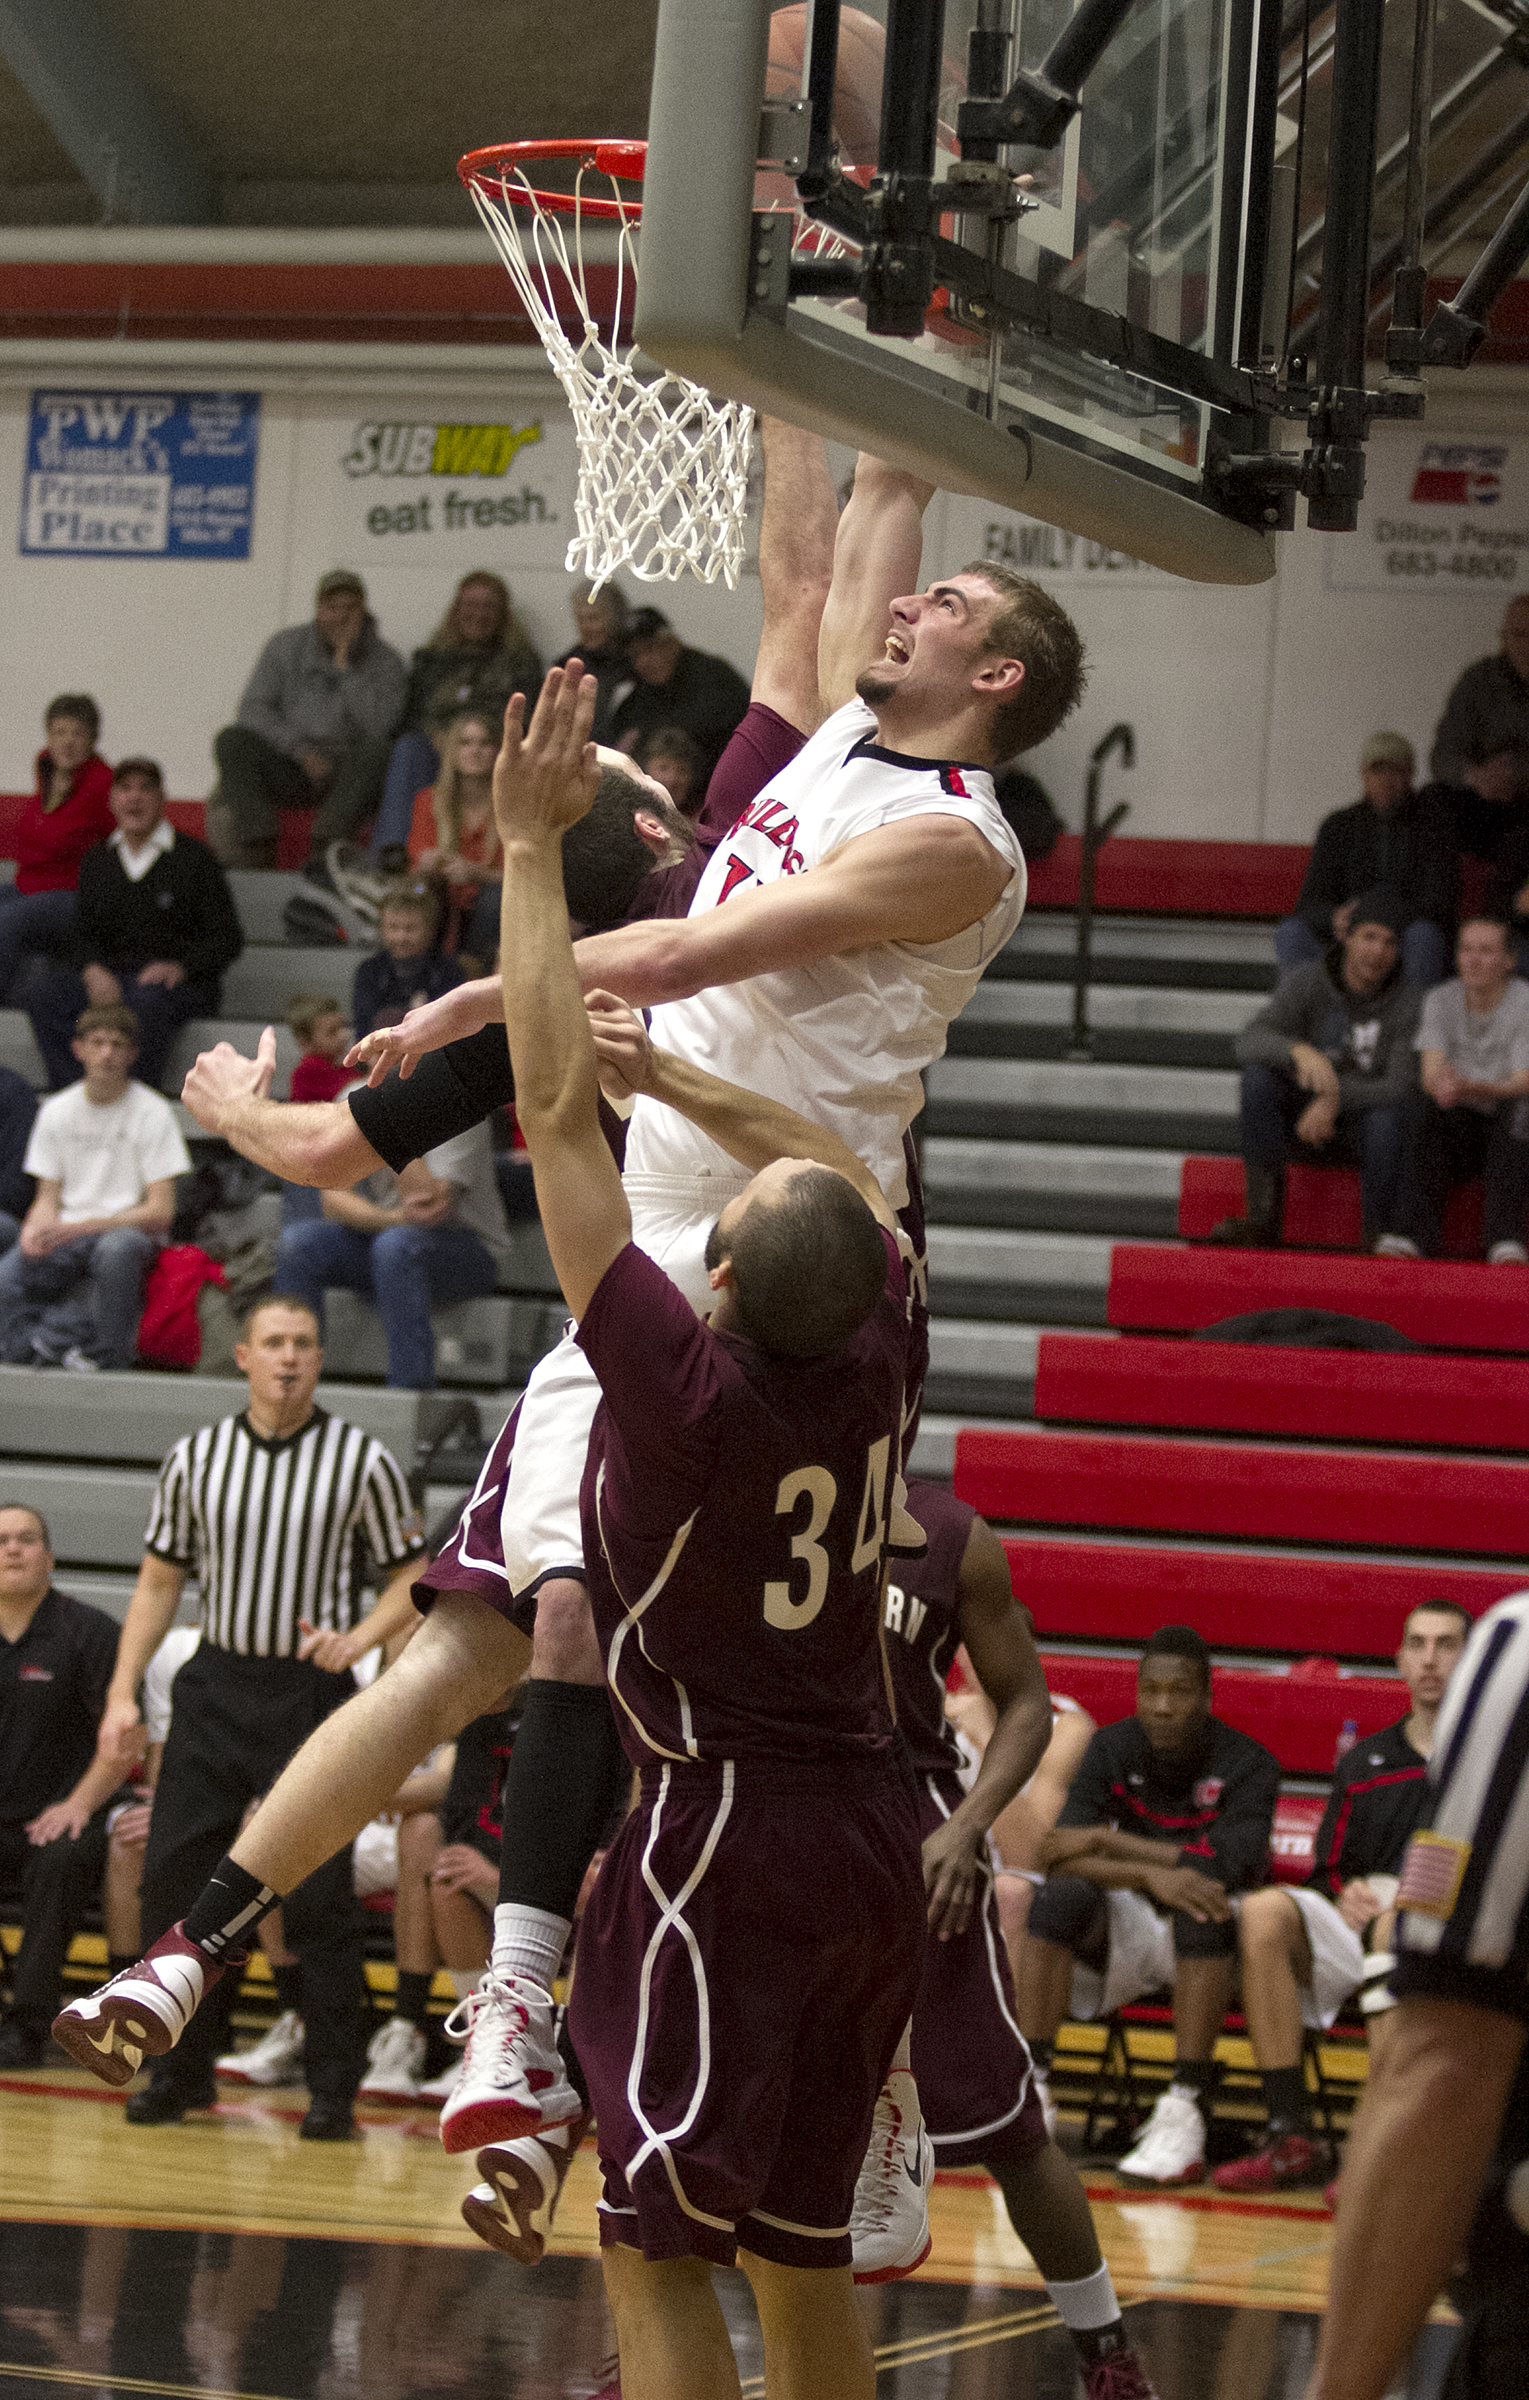 Jake Owsley goes up for a dunk during a men's basketball game